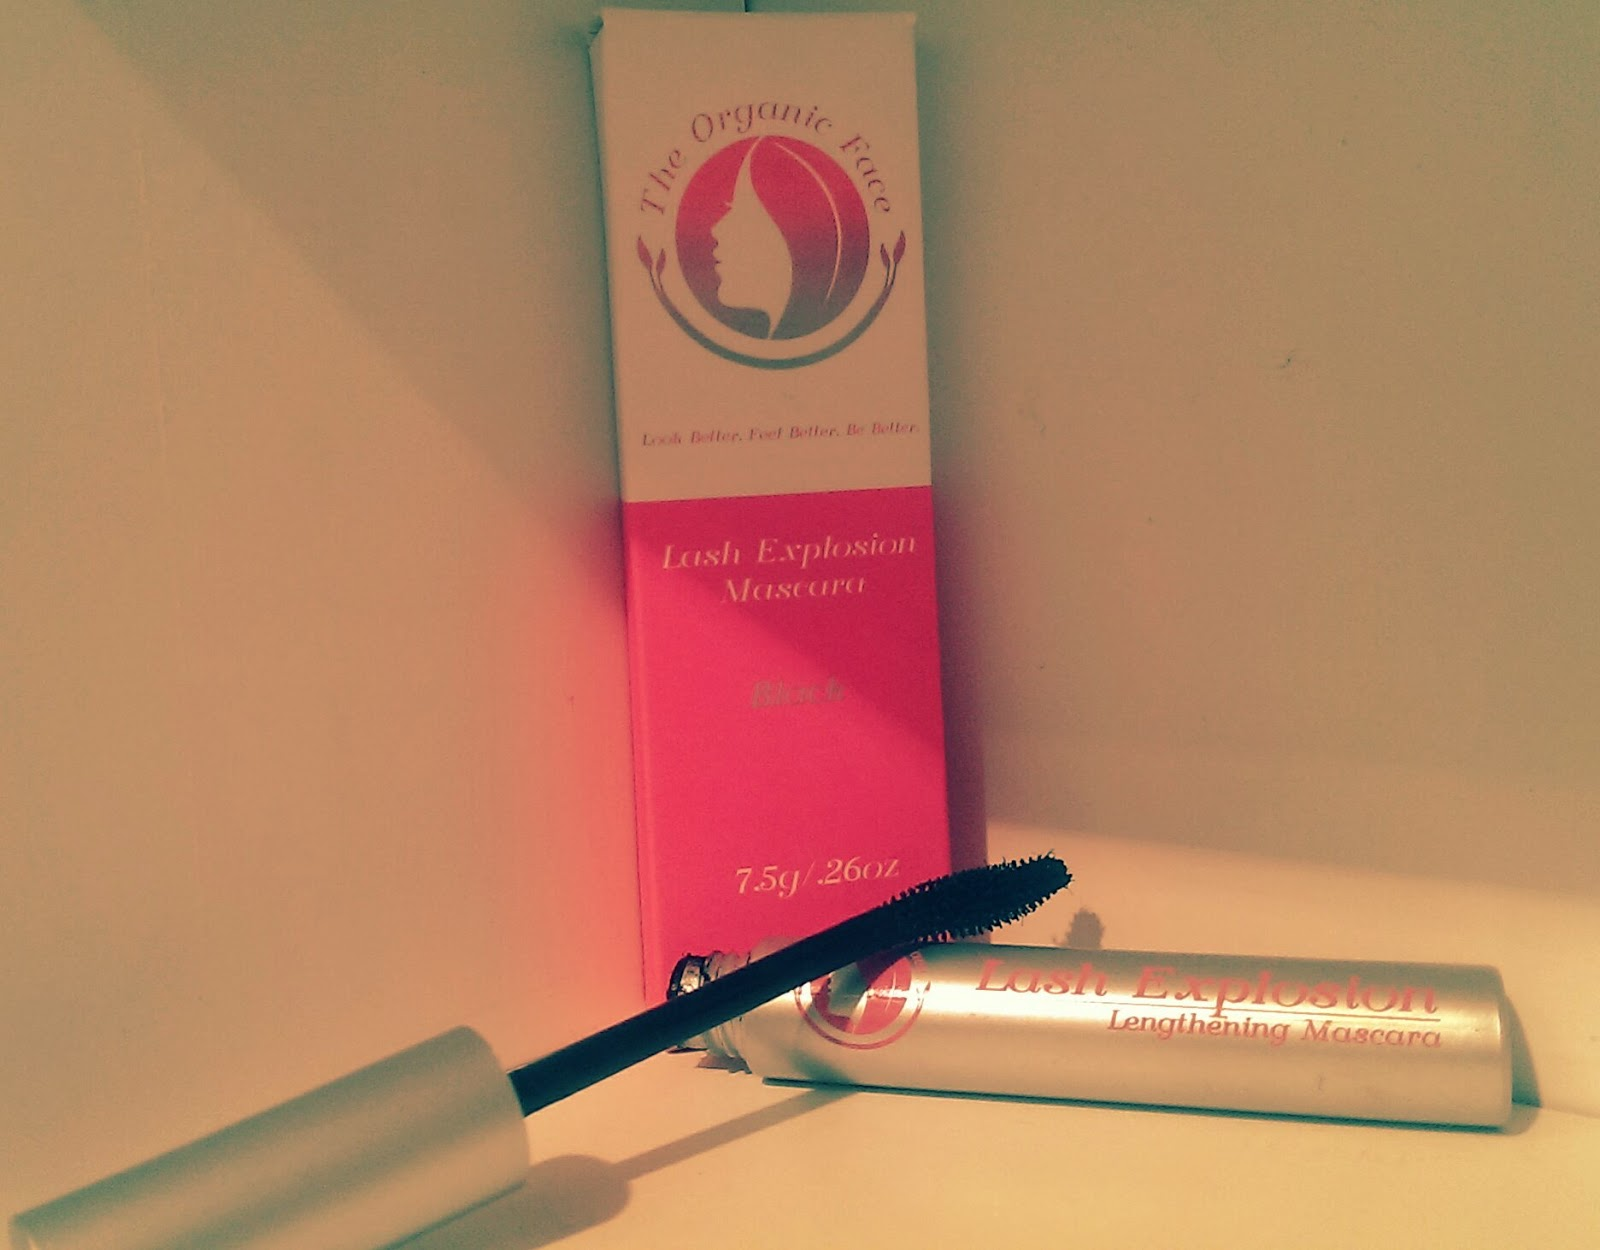 masacara Organic Cosmetics Mascara Review - Recommended Mascaras